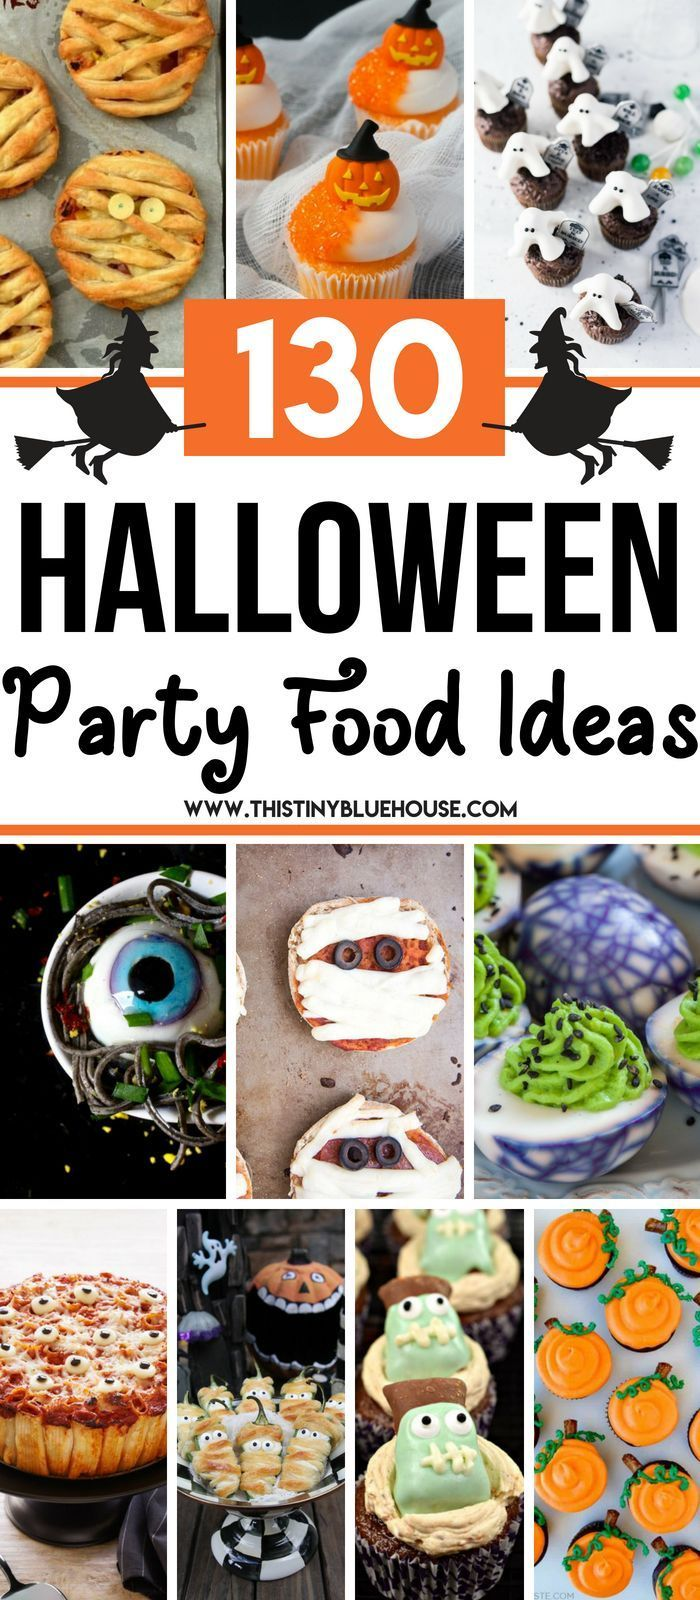 100+ Best Ultimate Halloween Party Food Ideas - This Tiny Blue House